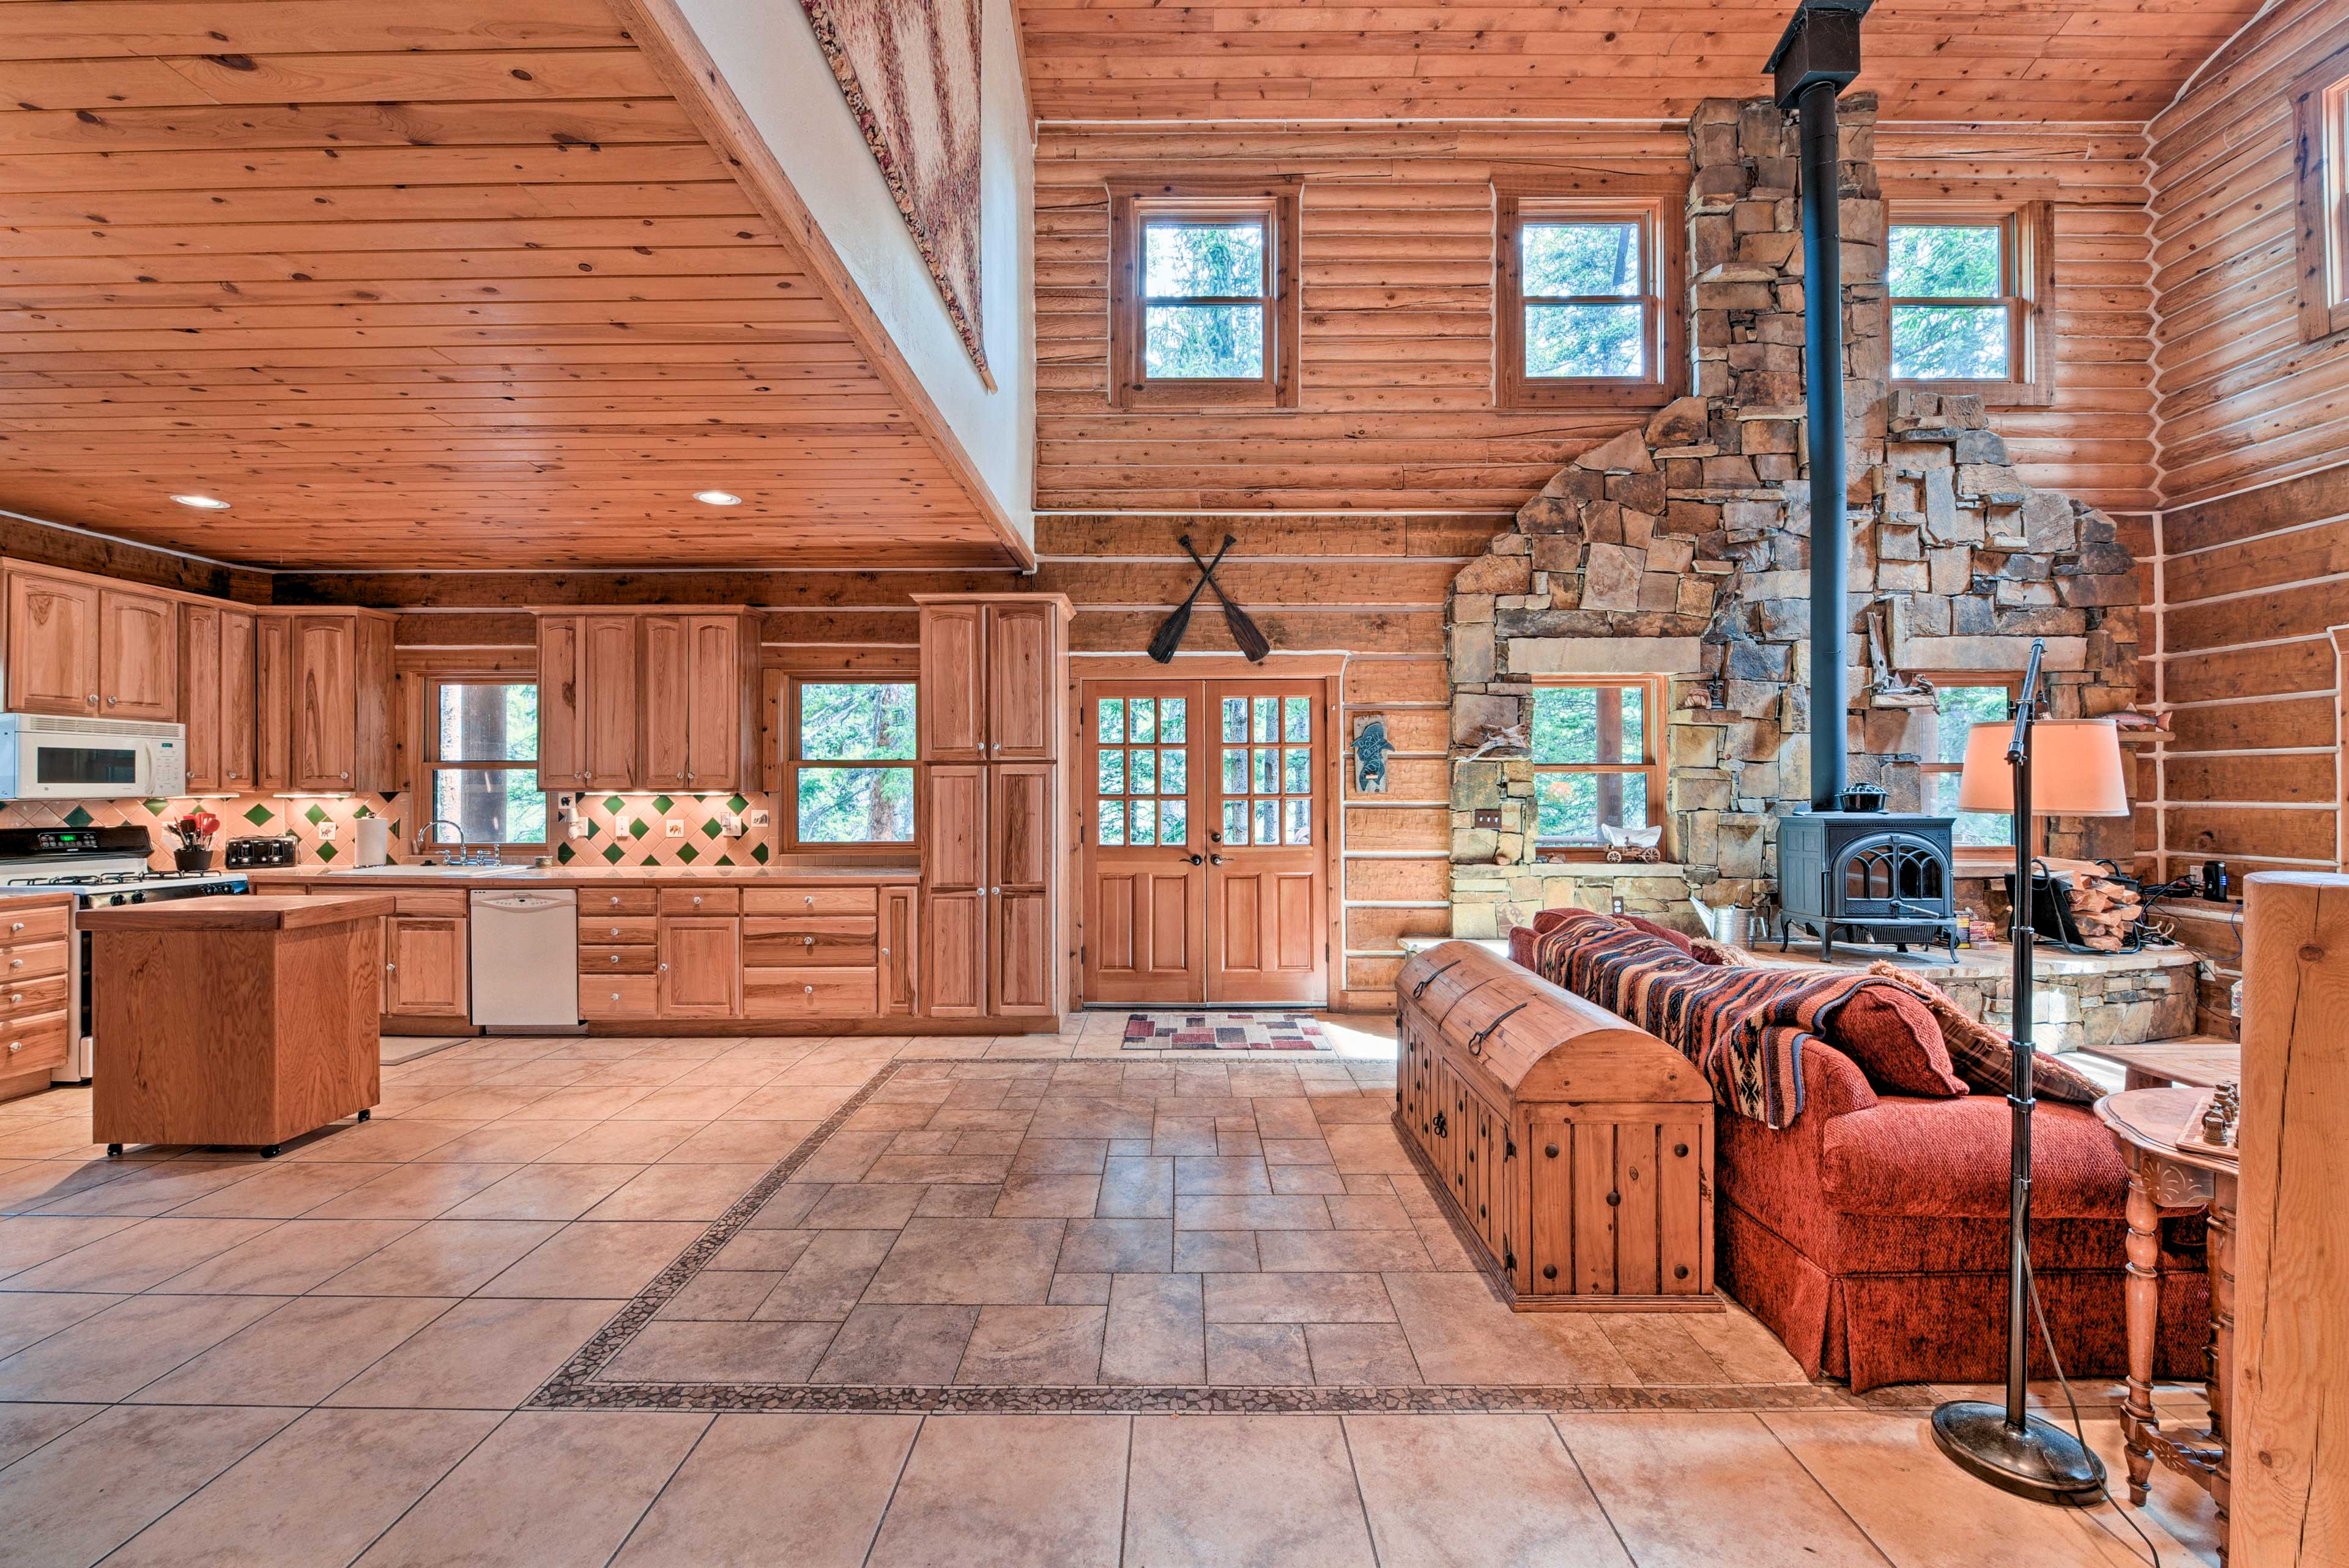 The sprawling 2,200-square-foot cabin boasts an open floor plan living area.